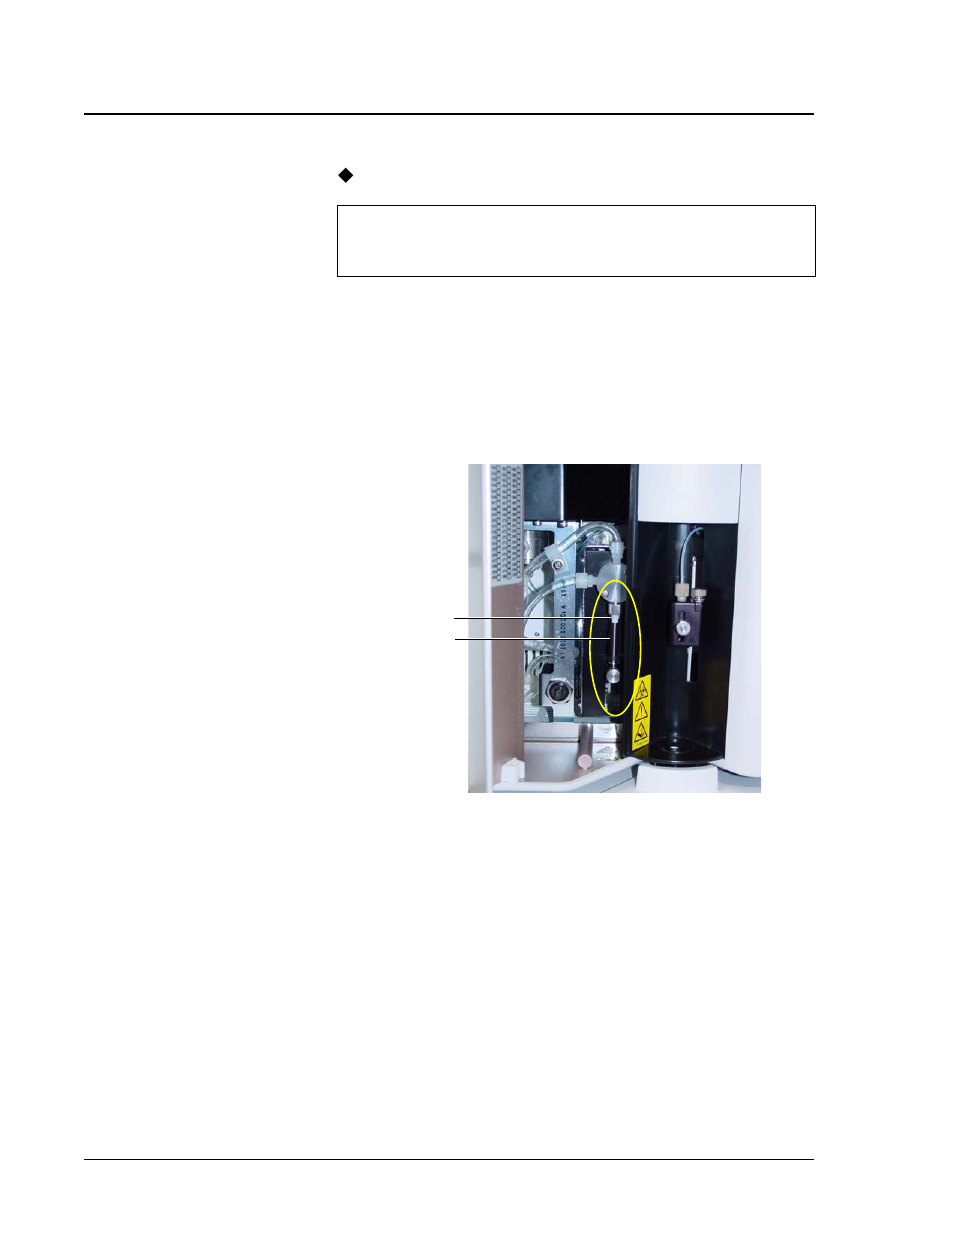 Luminex 200 installation guide user manual | page 35 / 52.